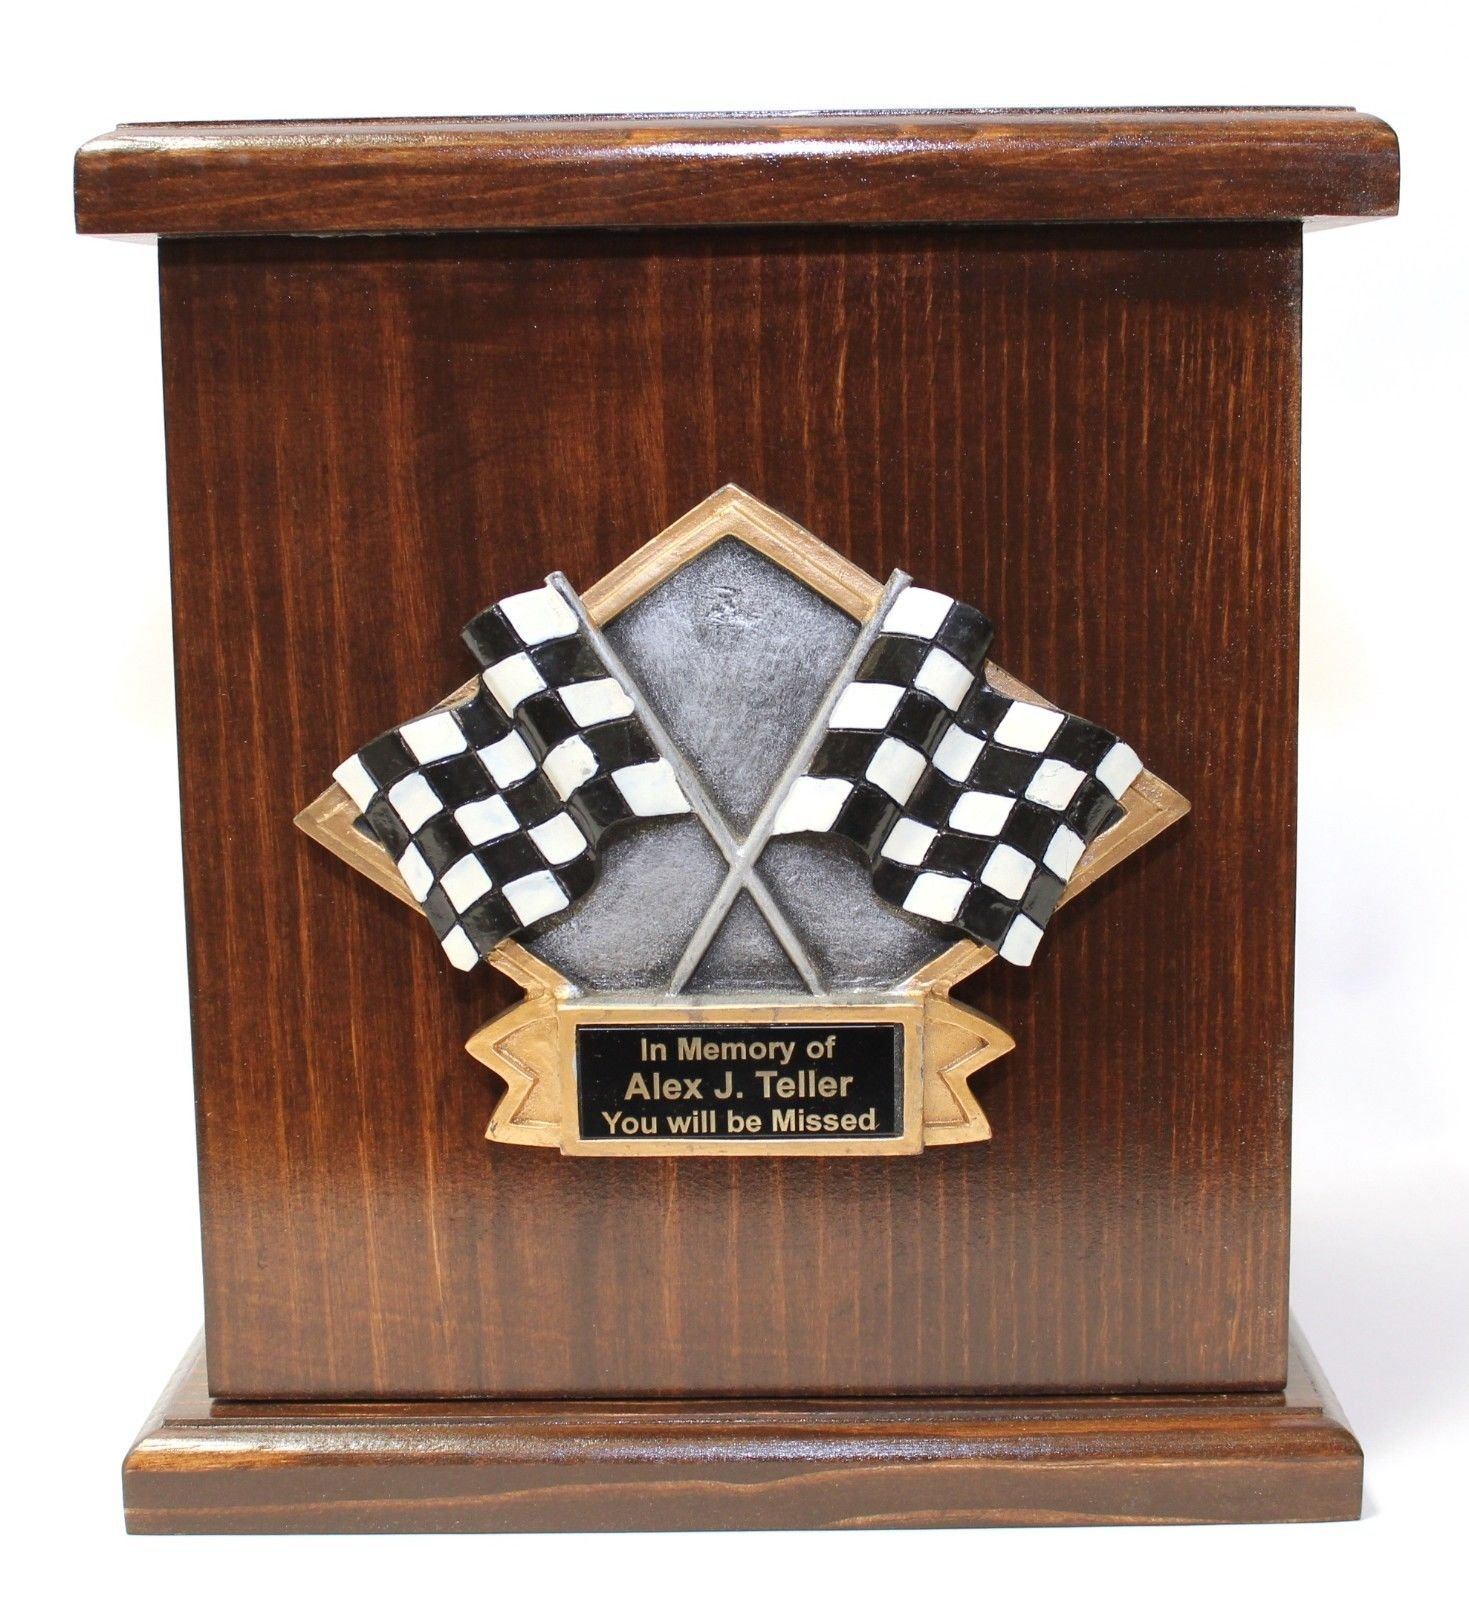 Car Racing Funeral Cremation urn,Adult Memorial Wooden urn w/Personalization by NWA